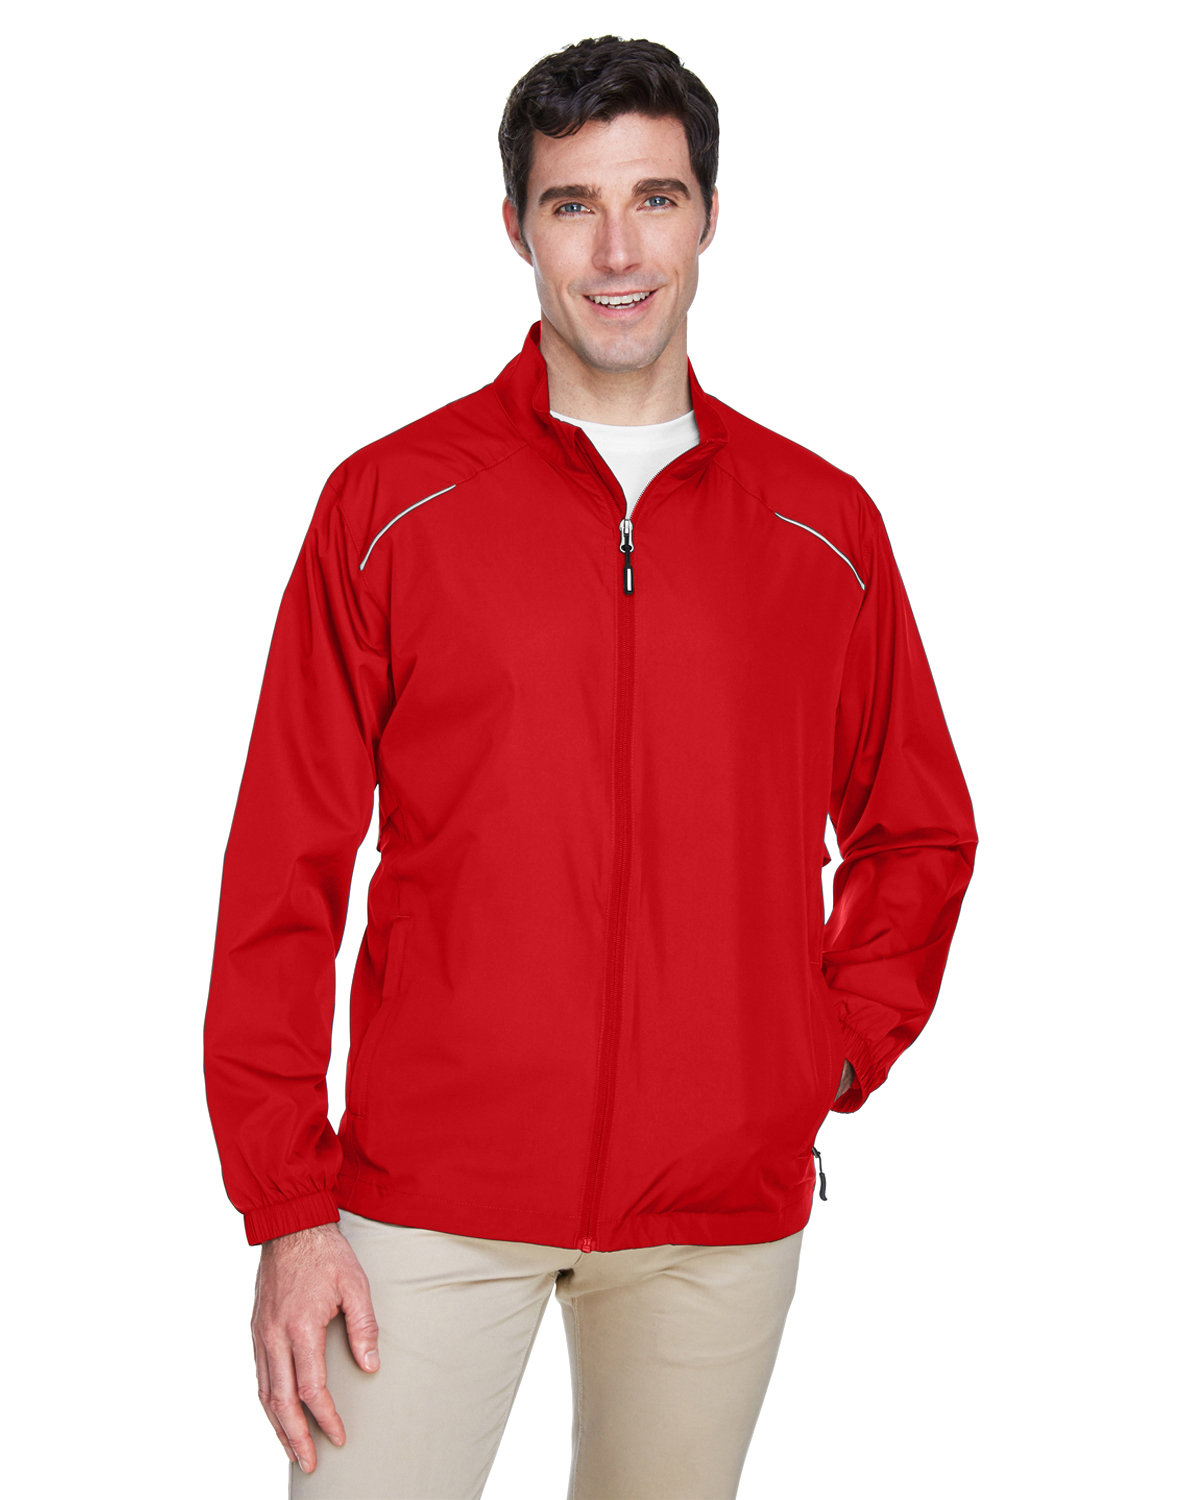 Core 365 Men's Motivate Unlined Lightweight Jacket CLASSIC RED